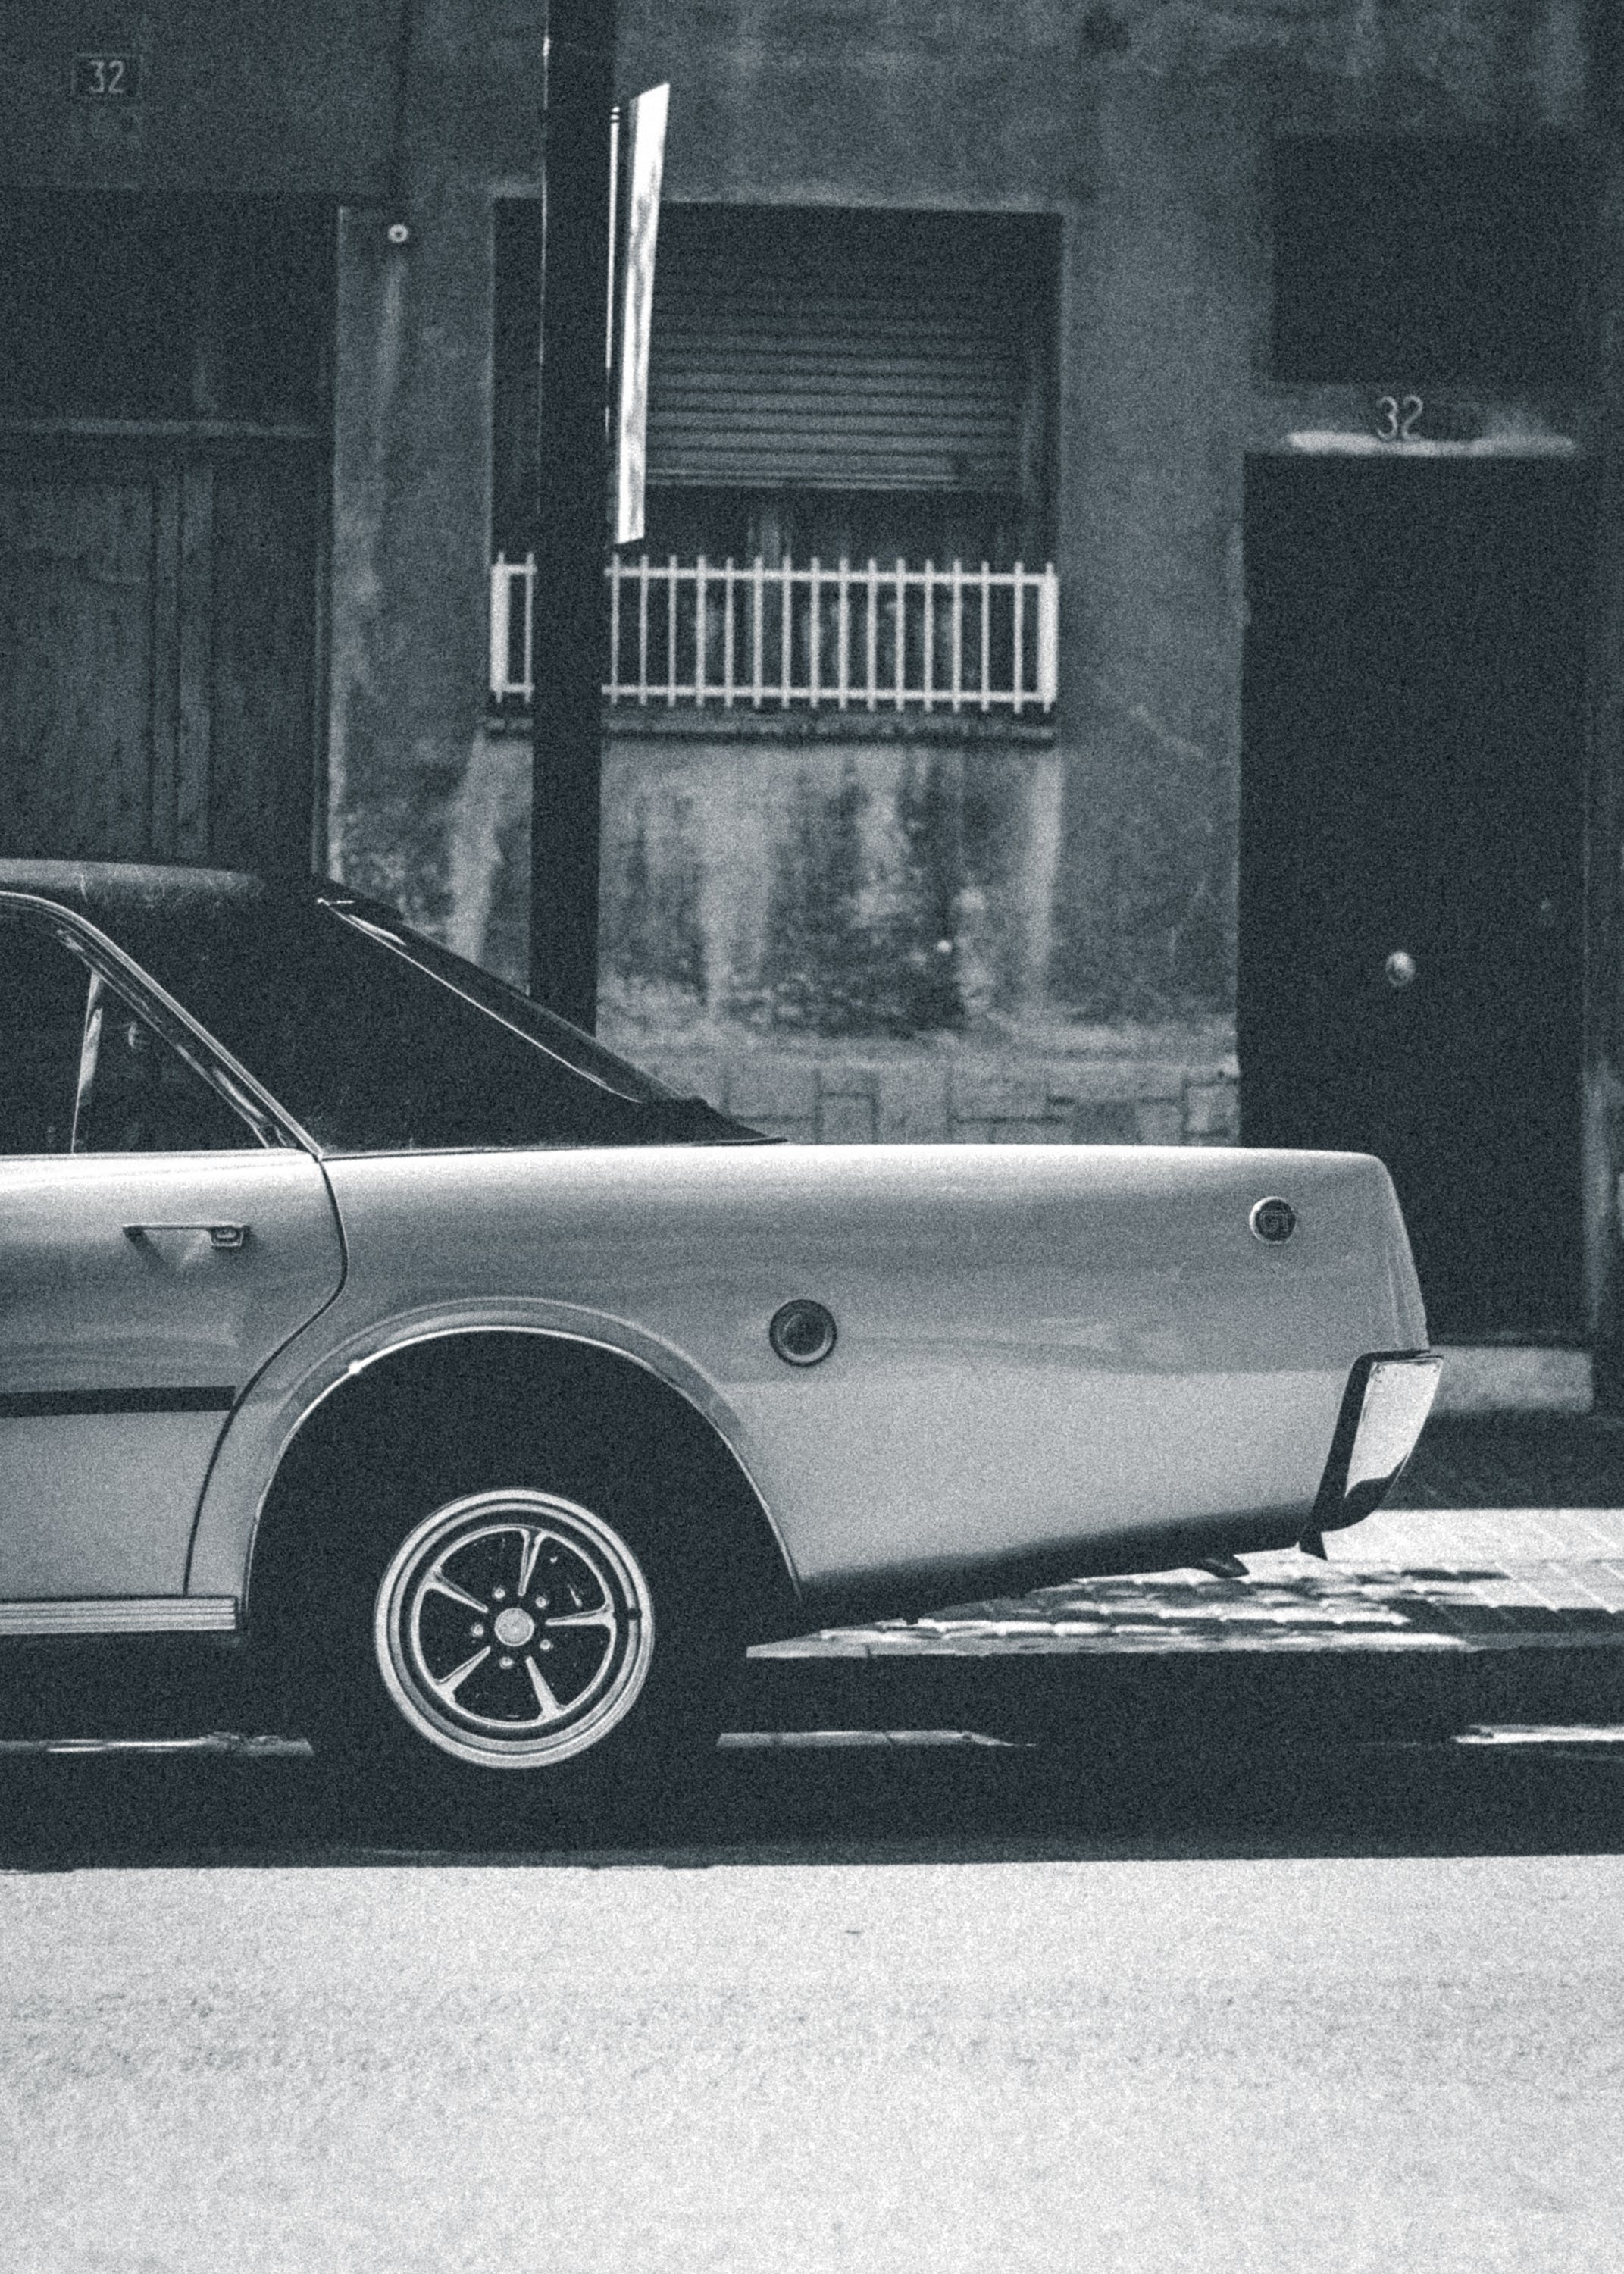 Grayscale Photography Of Sedan On Roadside